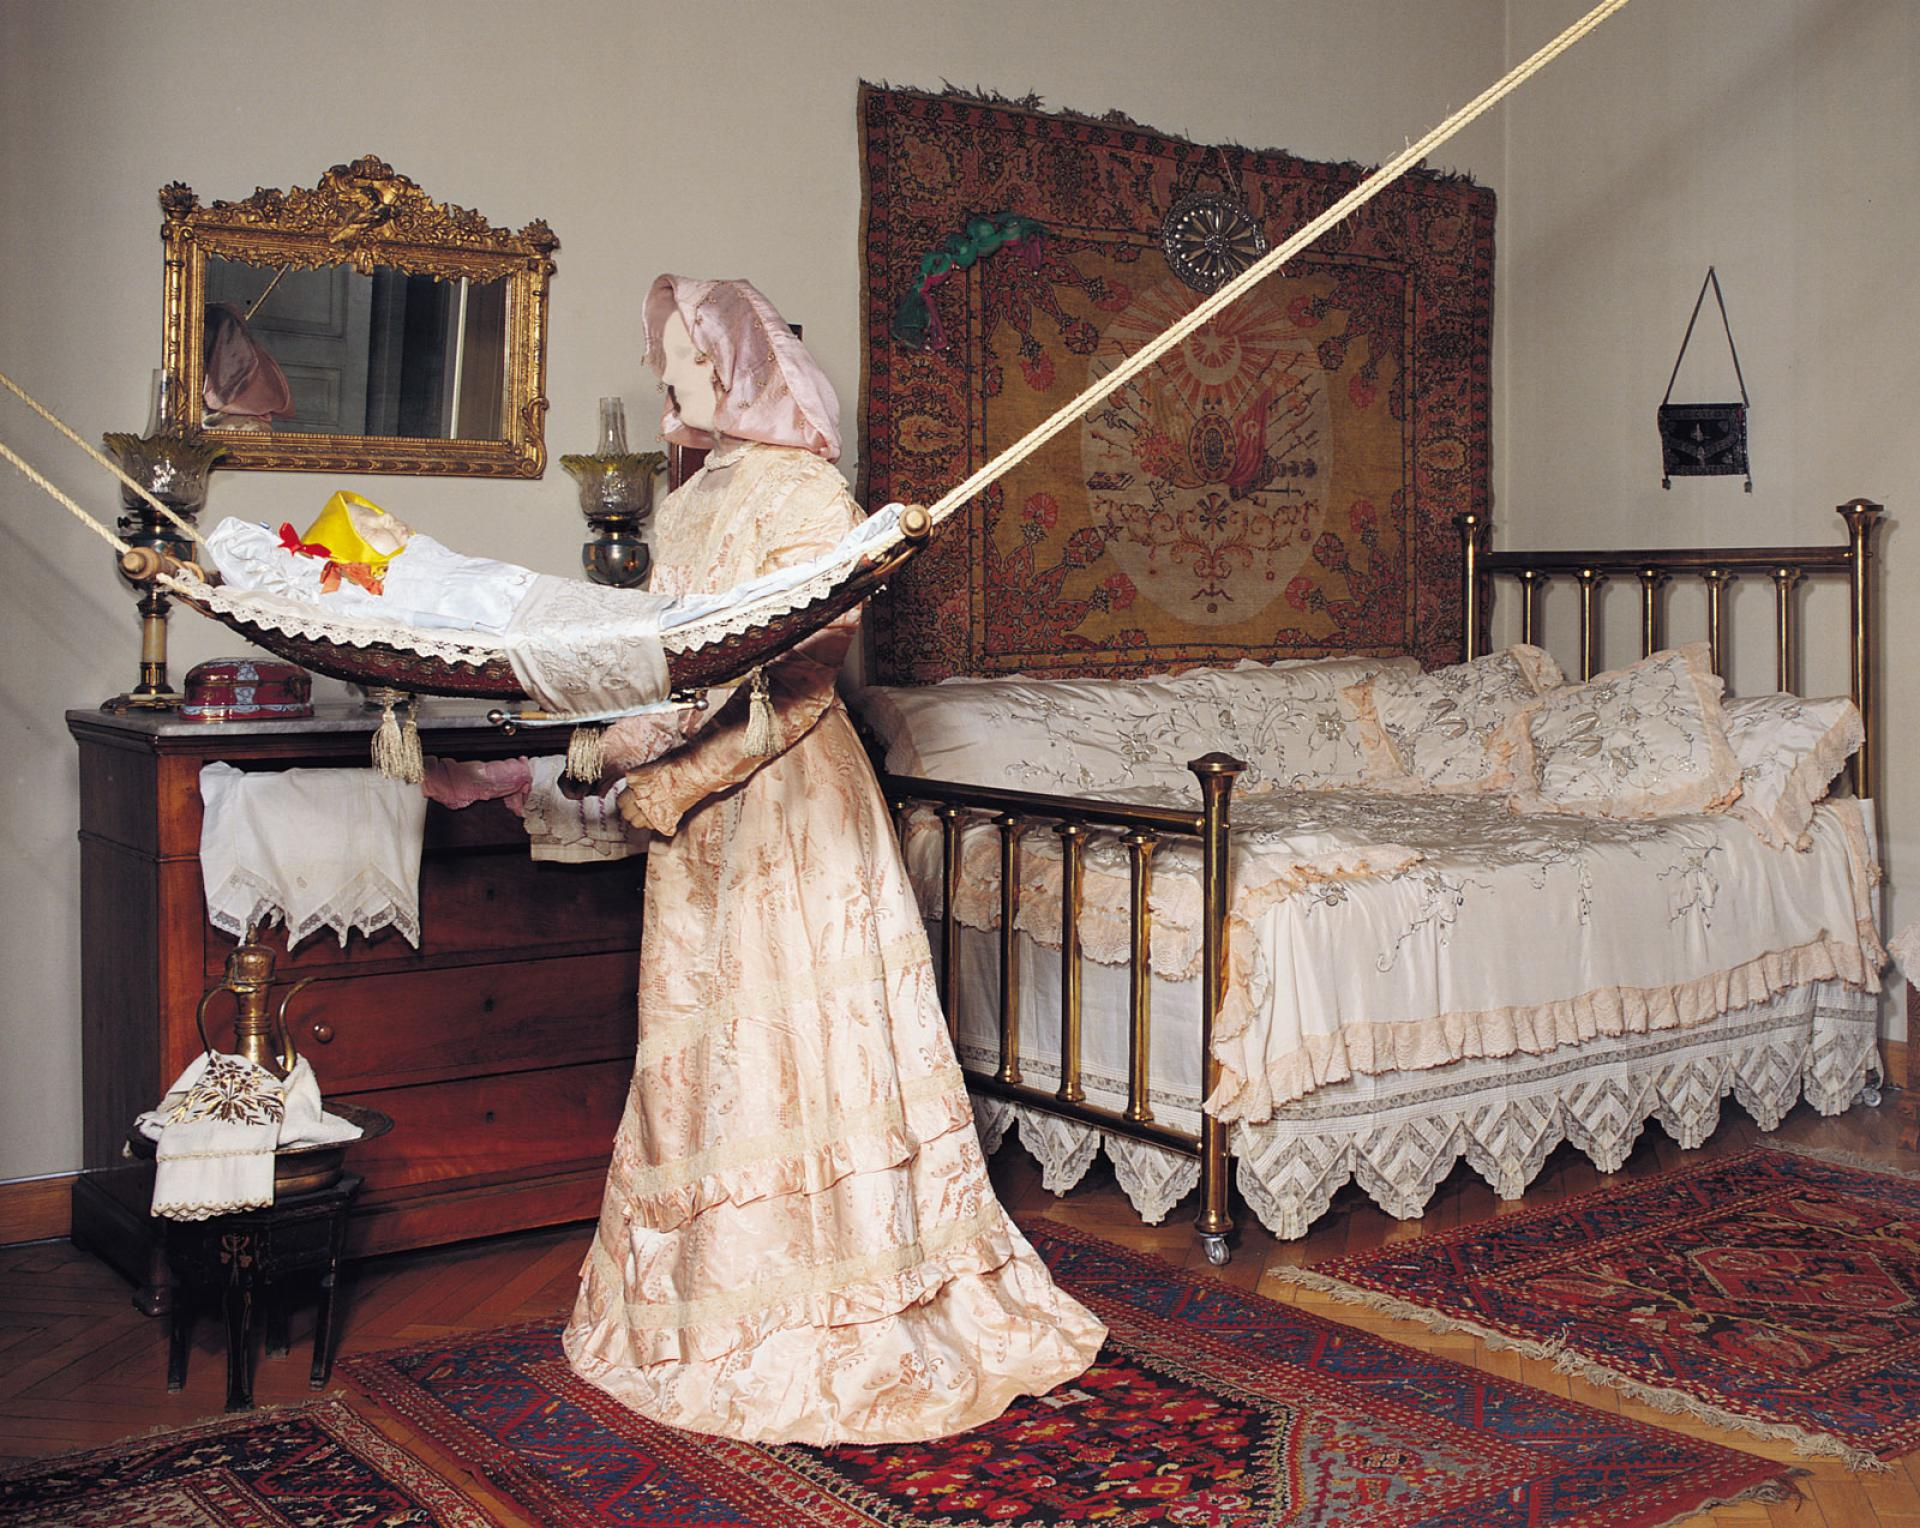 Childbed customs - The periods immediately before and after childbirth have a place of special importance in the customs of the Turks. A midwife living in the vicinity would be selected and angaged. In the most spacious bedroom of the newborn baby's house , the childbed was set up. The childbed was covered with a quilt of satin or velvet with matching pillows and cushions. After a birth, pitchers of a specially- prepared sherbet would be sent out to relatives, close family friends, and neighbors to announce the good news. The guests coming to offer their congratulations would be served sherbet. The childbed would be dismantled on the seventh day of confinement. The fortied day after the birth of a child was the occasion for the mother  and infant's excursion to the local public bath accompanied by friends, neighbors, and relatives.